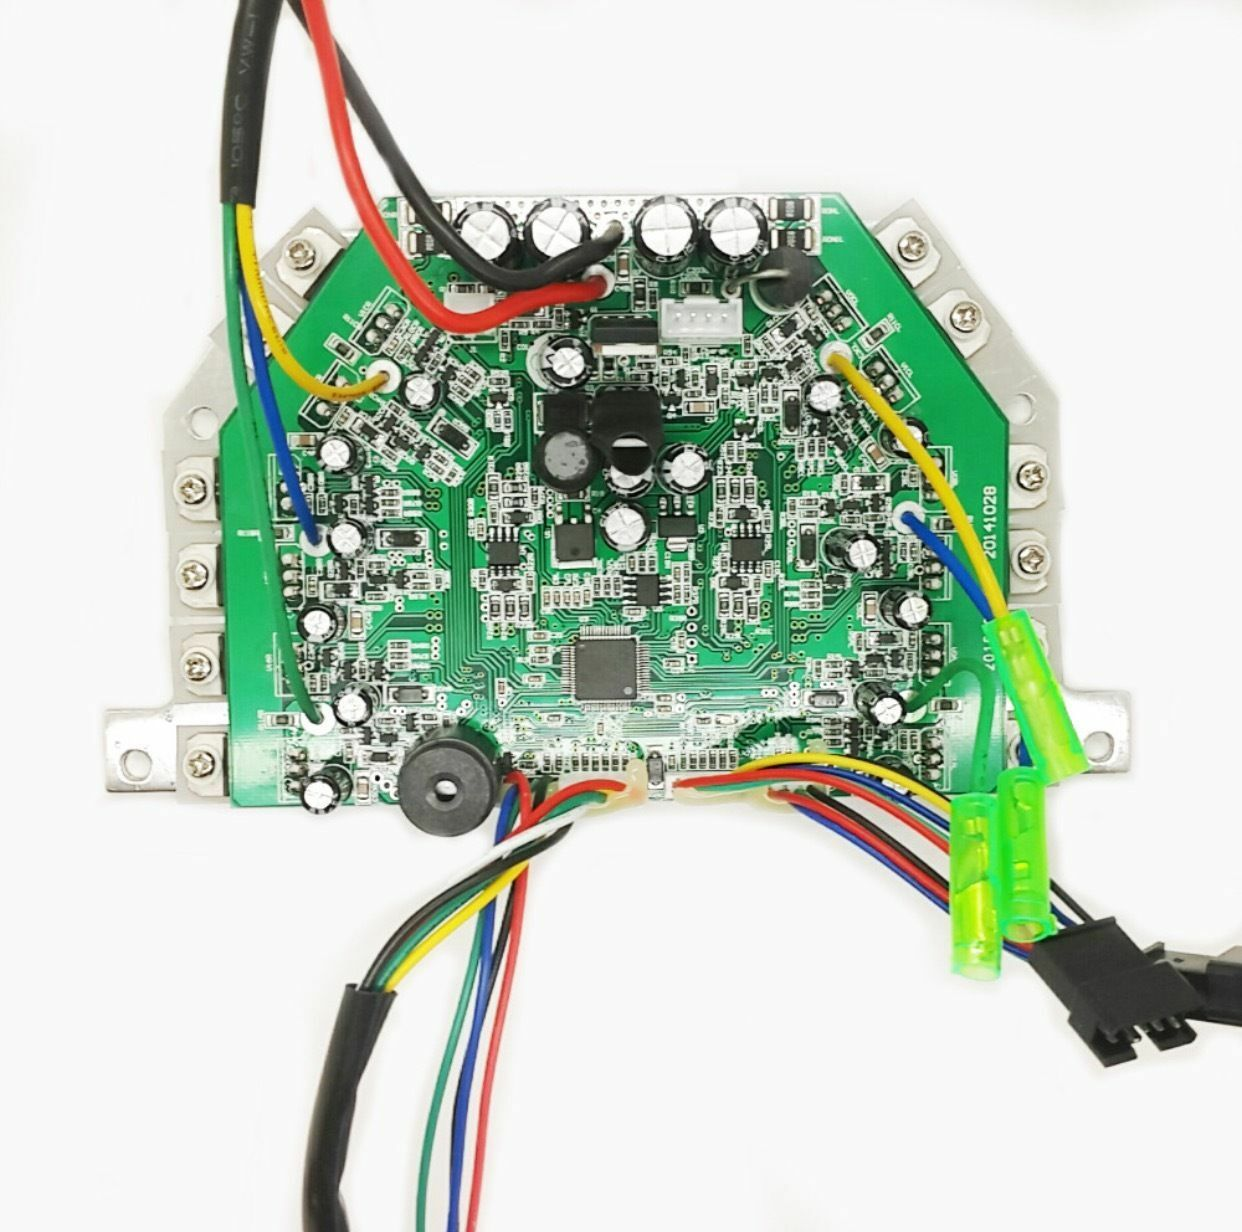 Wiring Diagram For Hoverboard